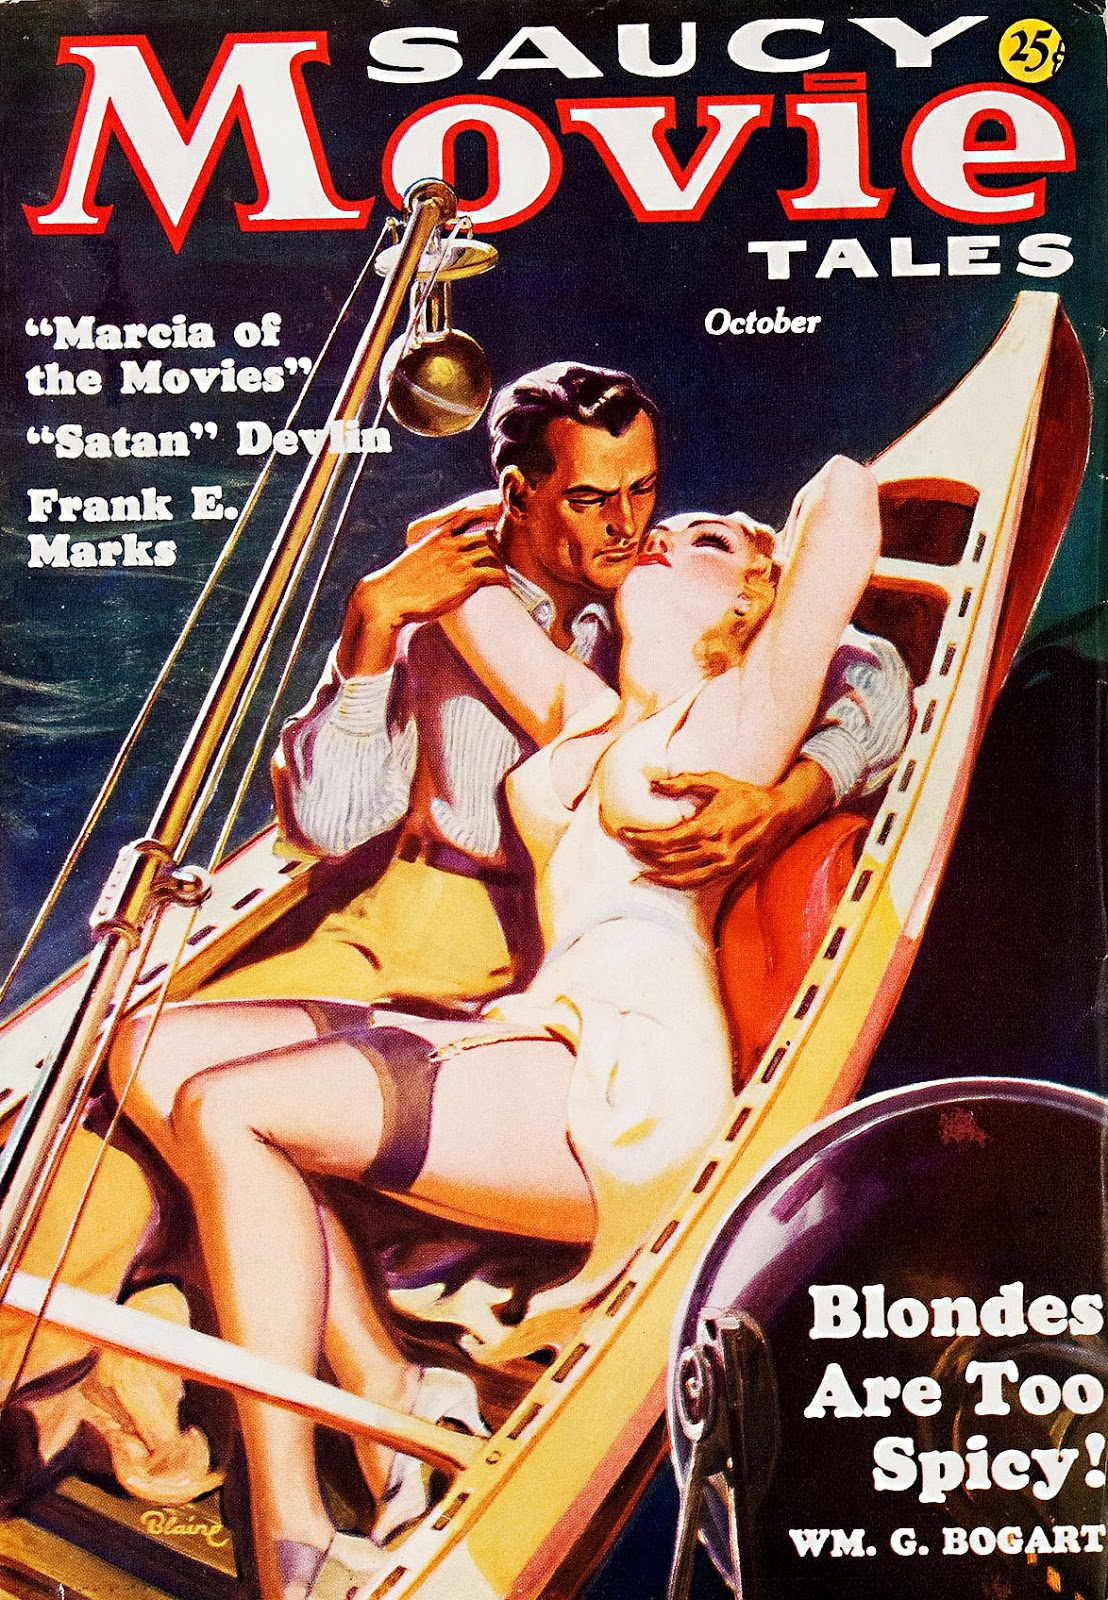 Tales norman saunders saucy movie